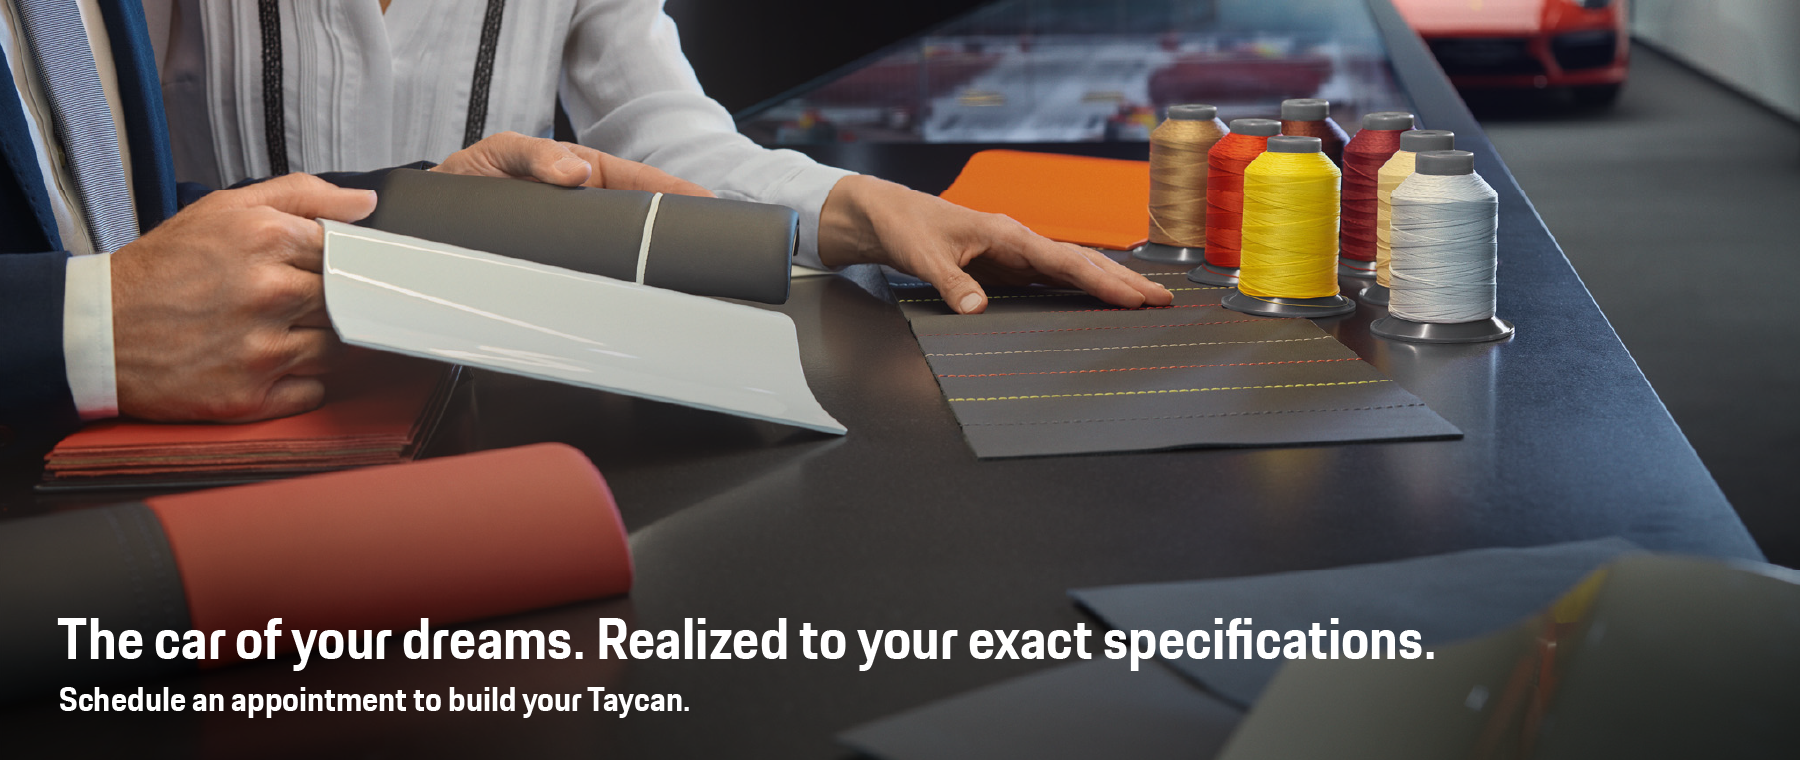 Build your Taycan – DI